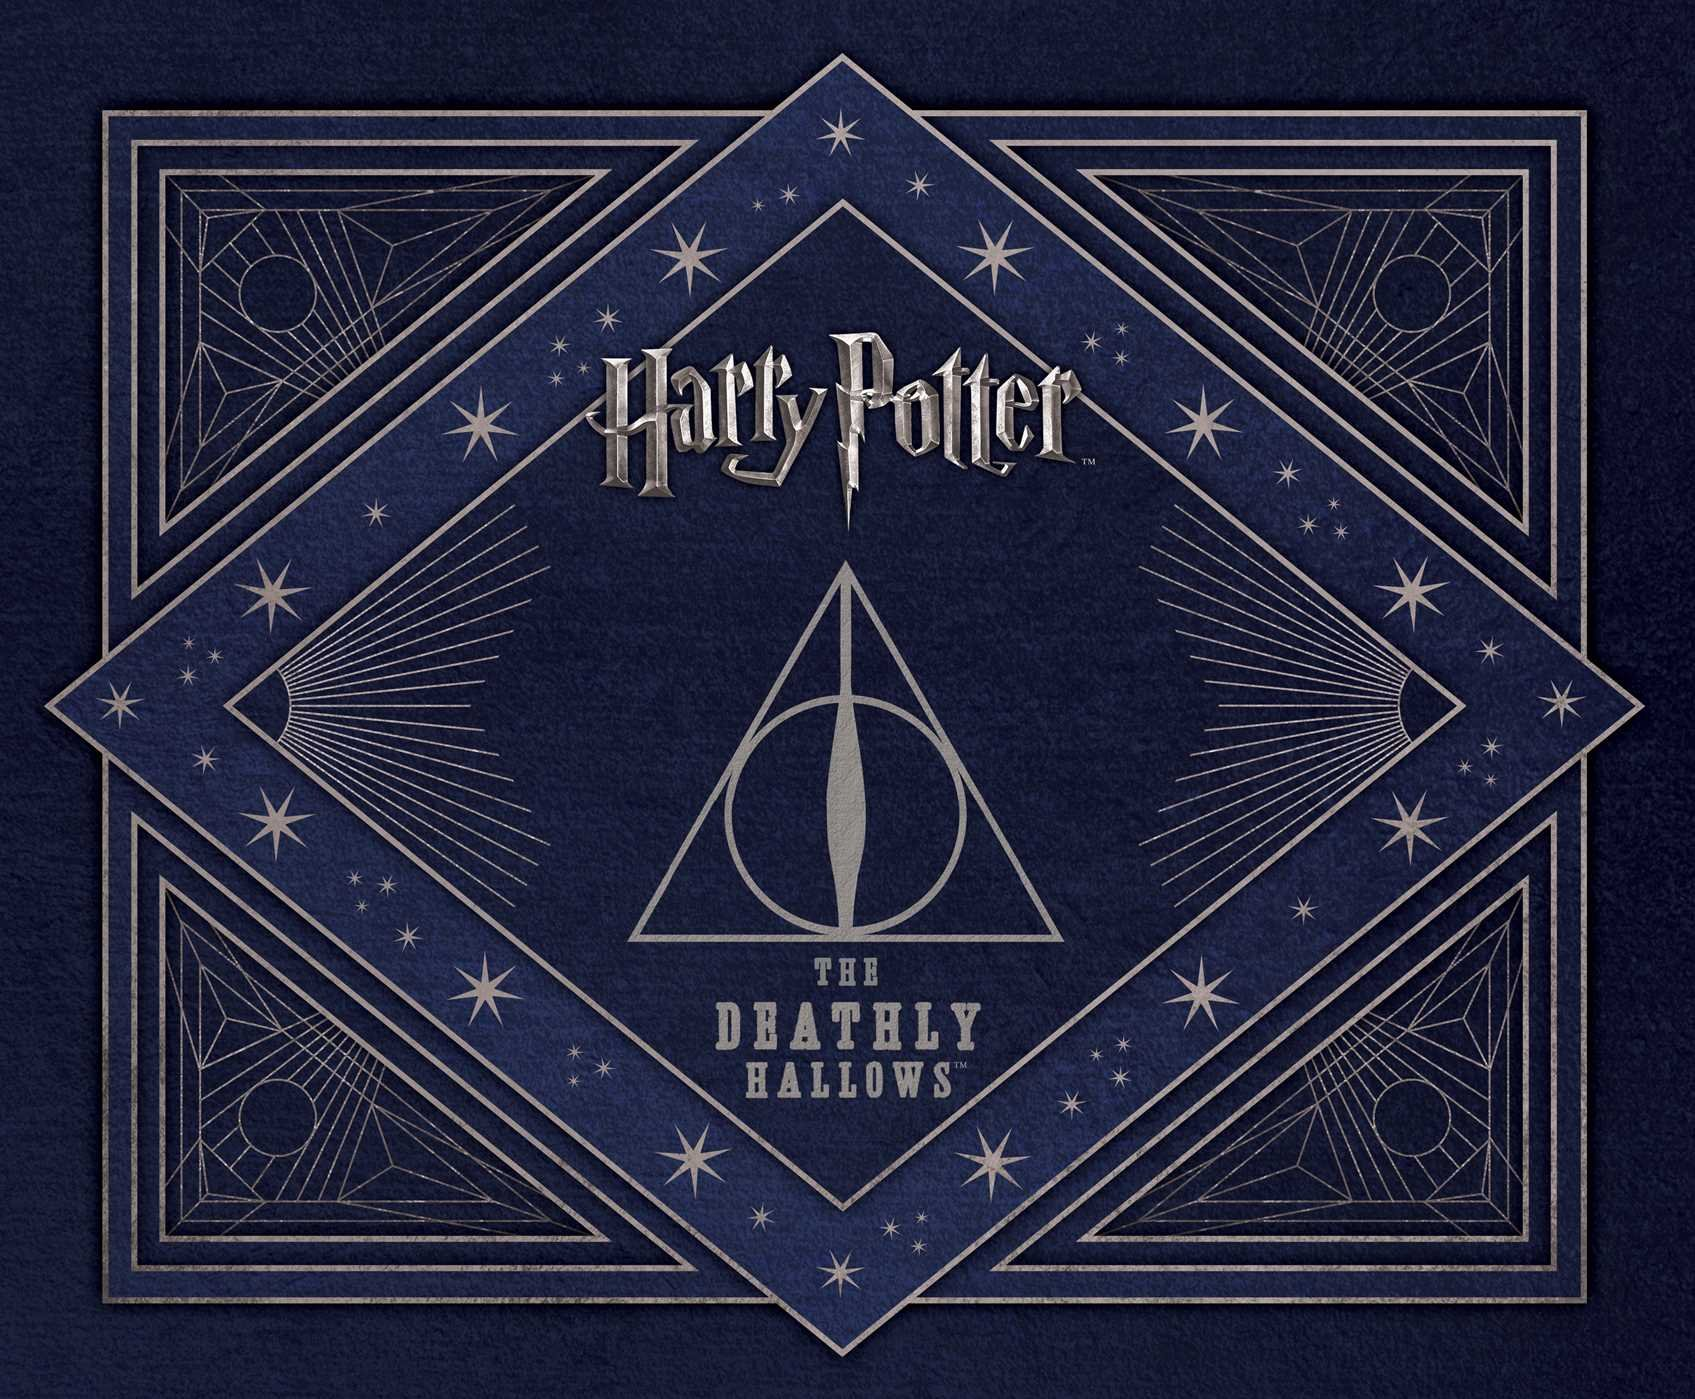 Harry potter deathly hallows deluxe stationery set insights harry potter deathly hallows deluxe stationery set insights deluxe stationery sets insight editions 9781608879632 amazon books buycottarizona